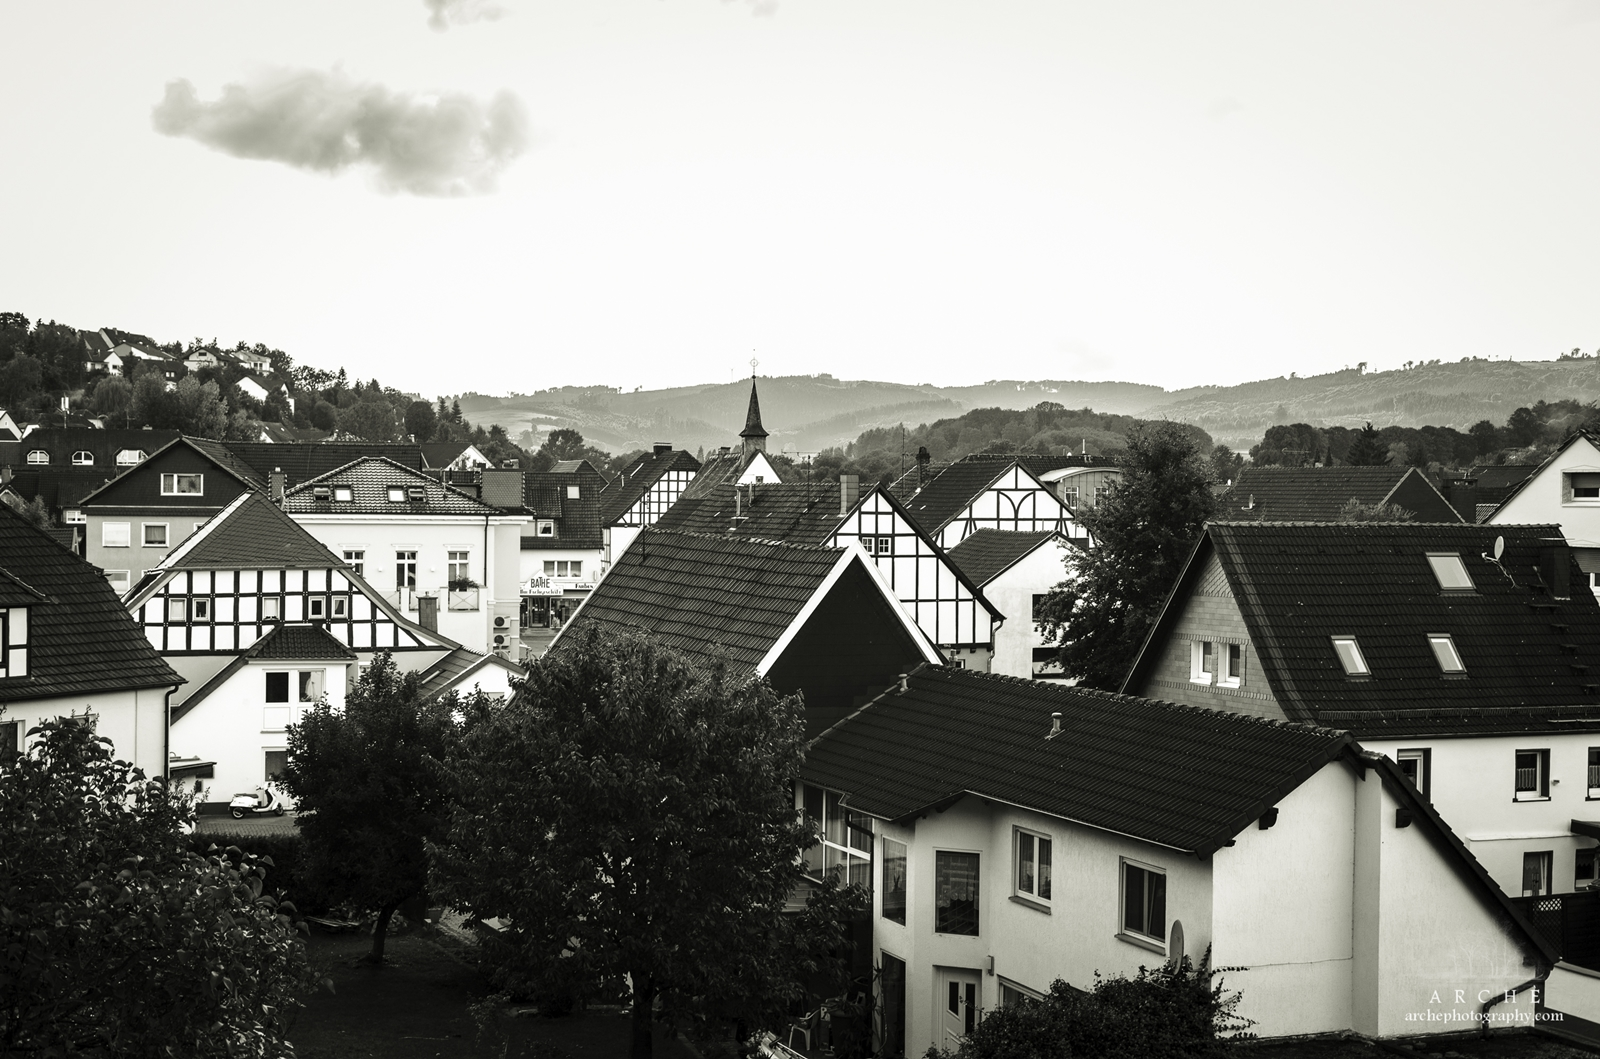 Balve, Germany 2015